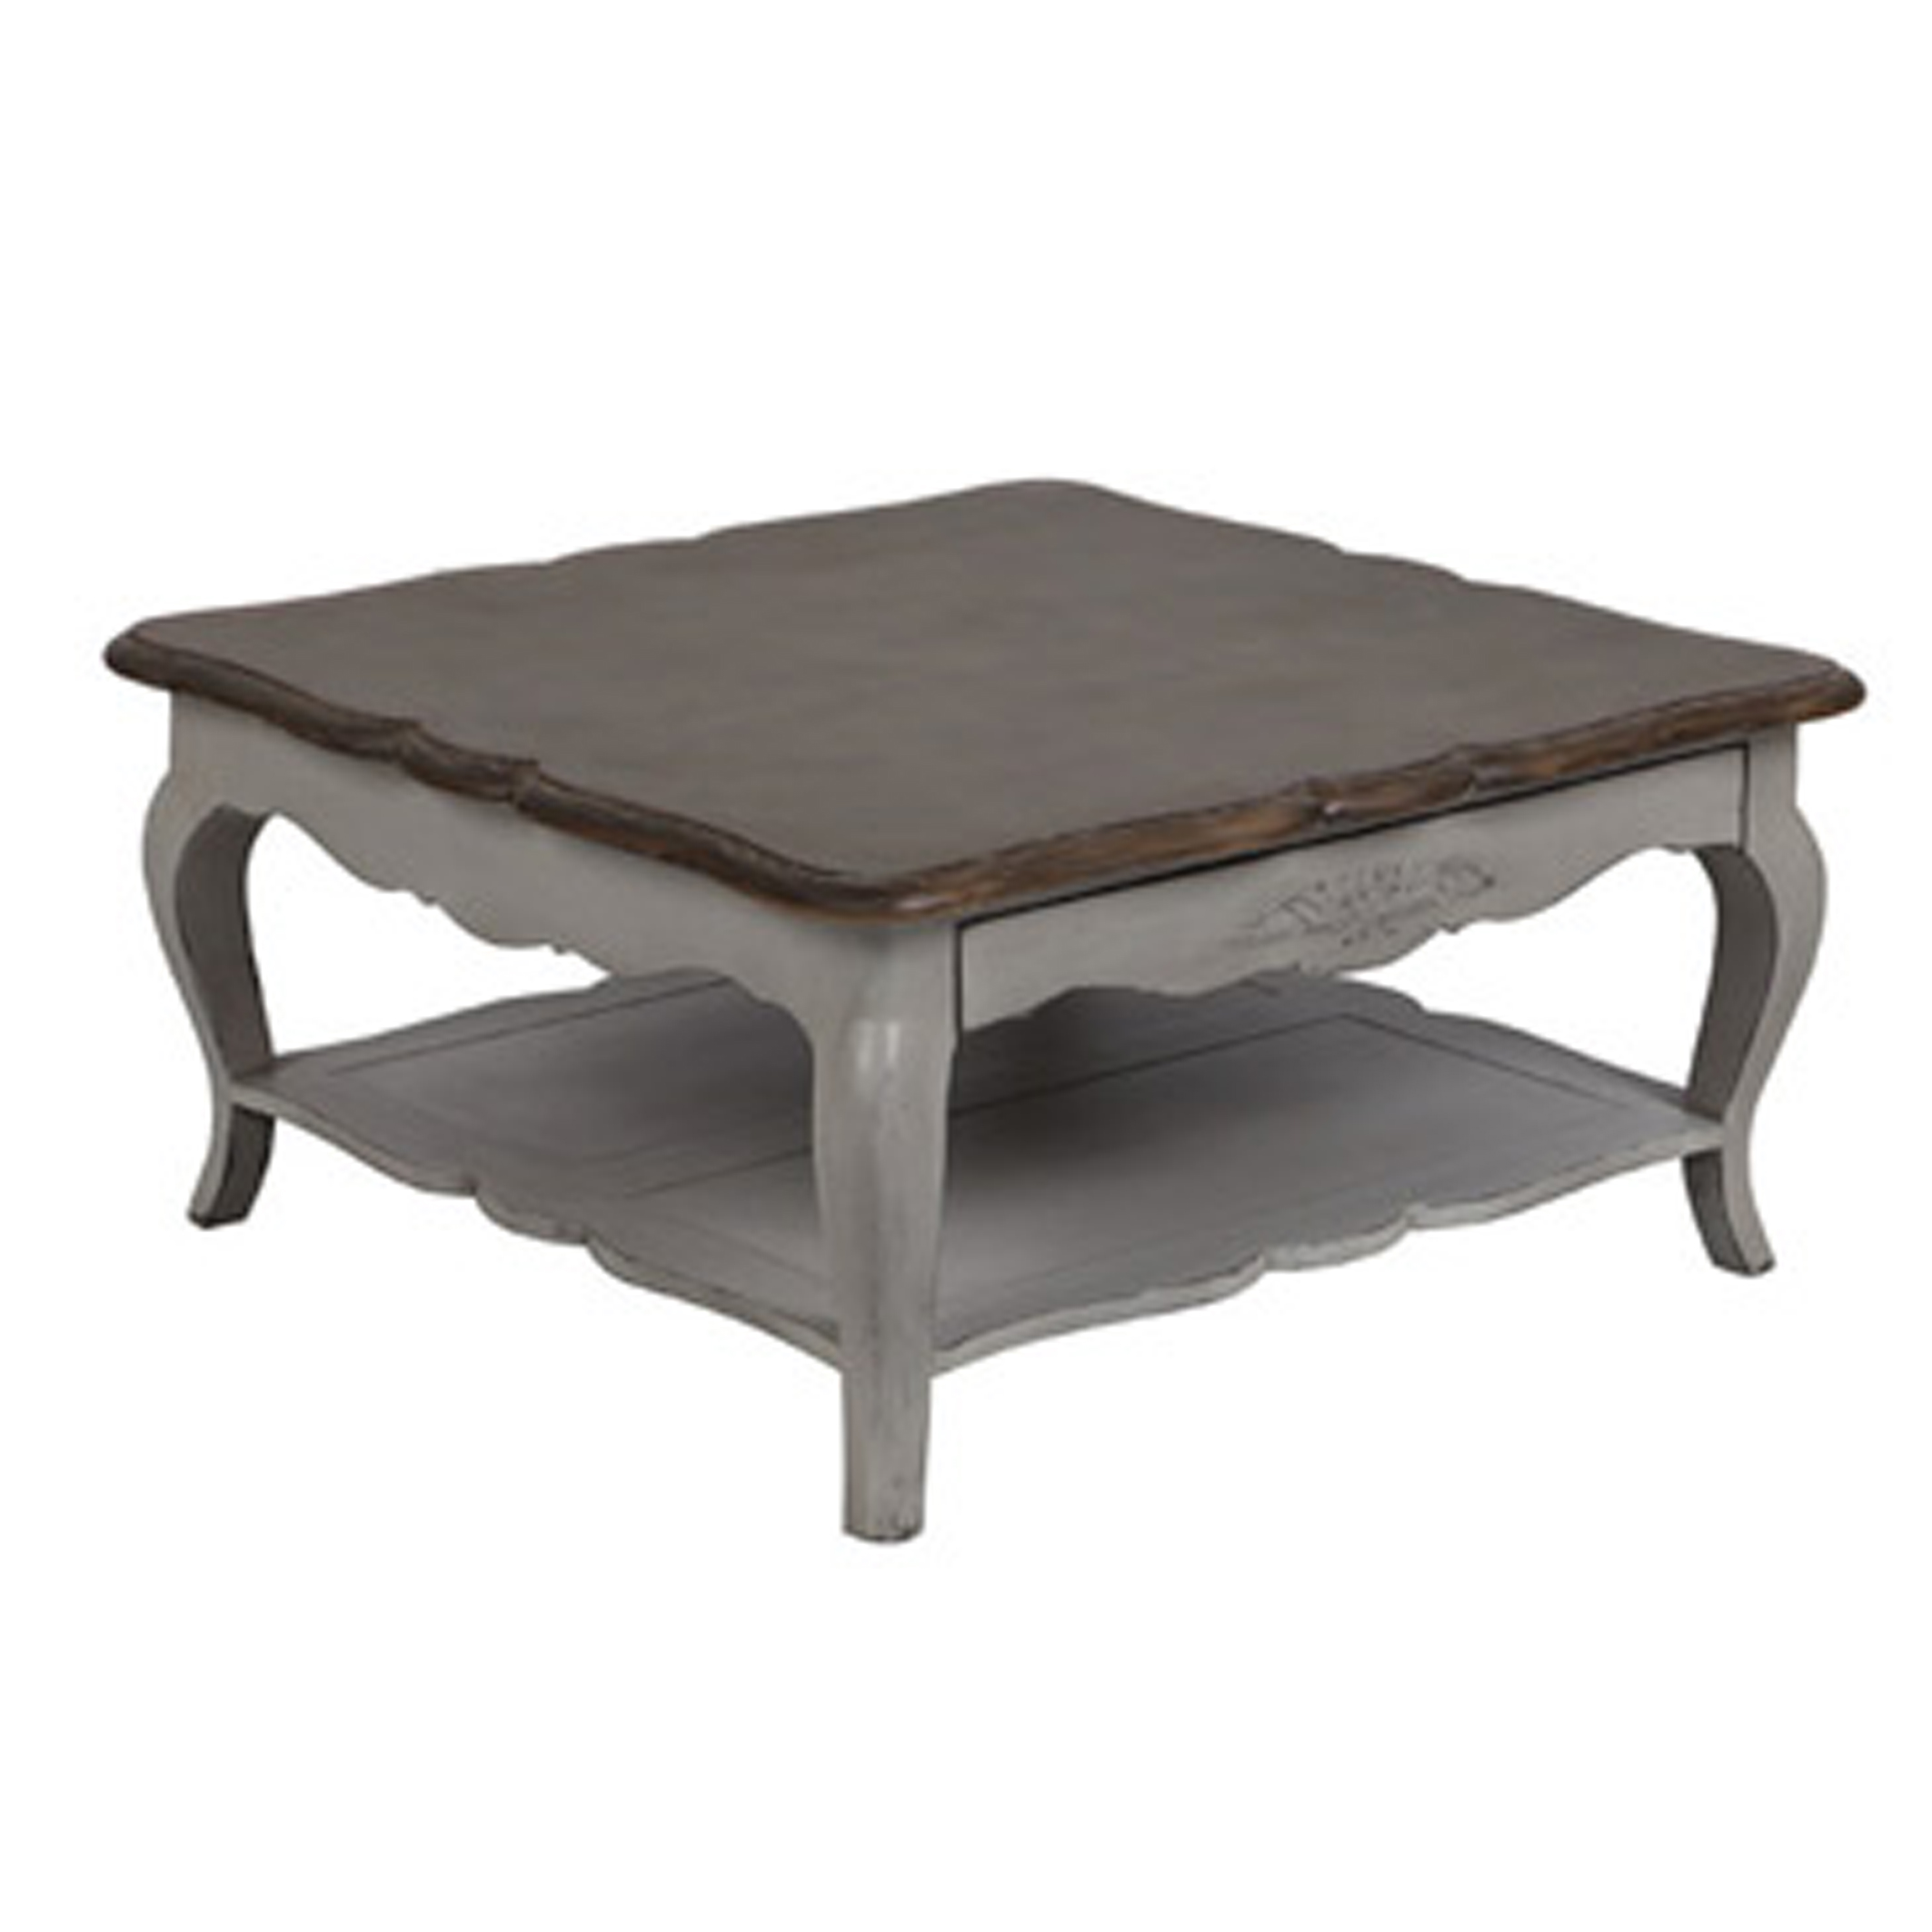 405_Table-Basse-Carree-Chateau-Dependance-Gris Meilleur De De Table Basse Enfant